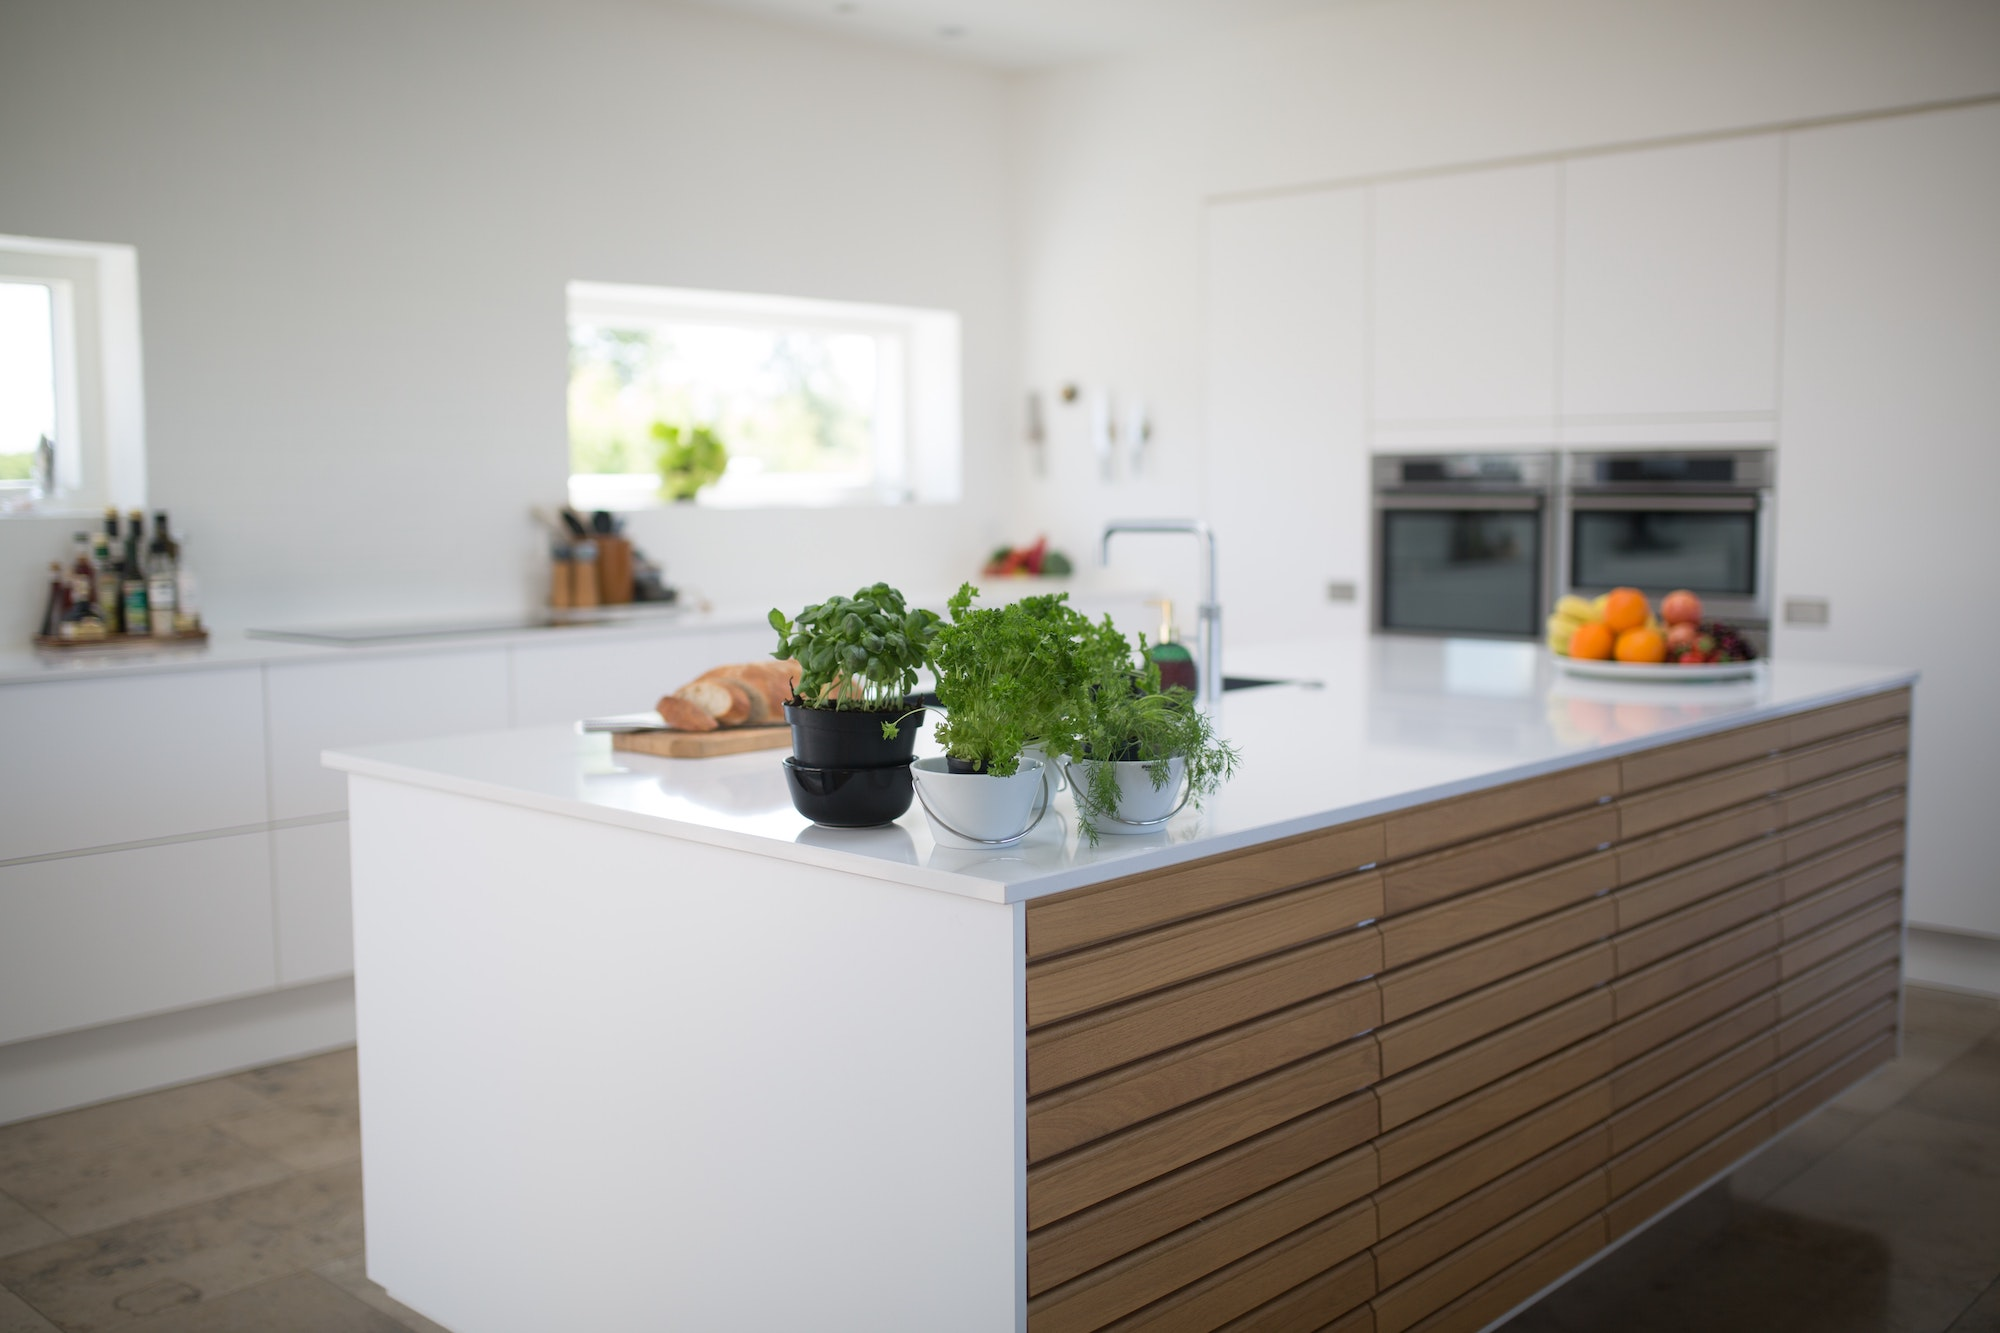 6 Simple Hygiene Tips To Help You Keep A Clean Kitchen